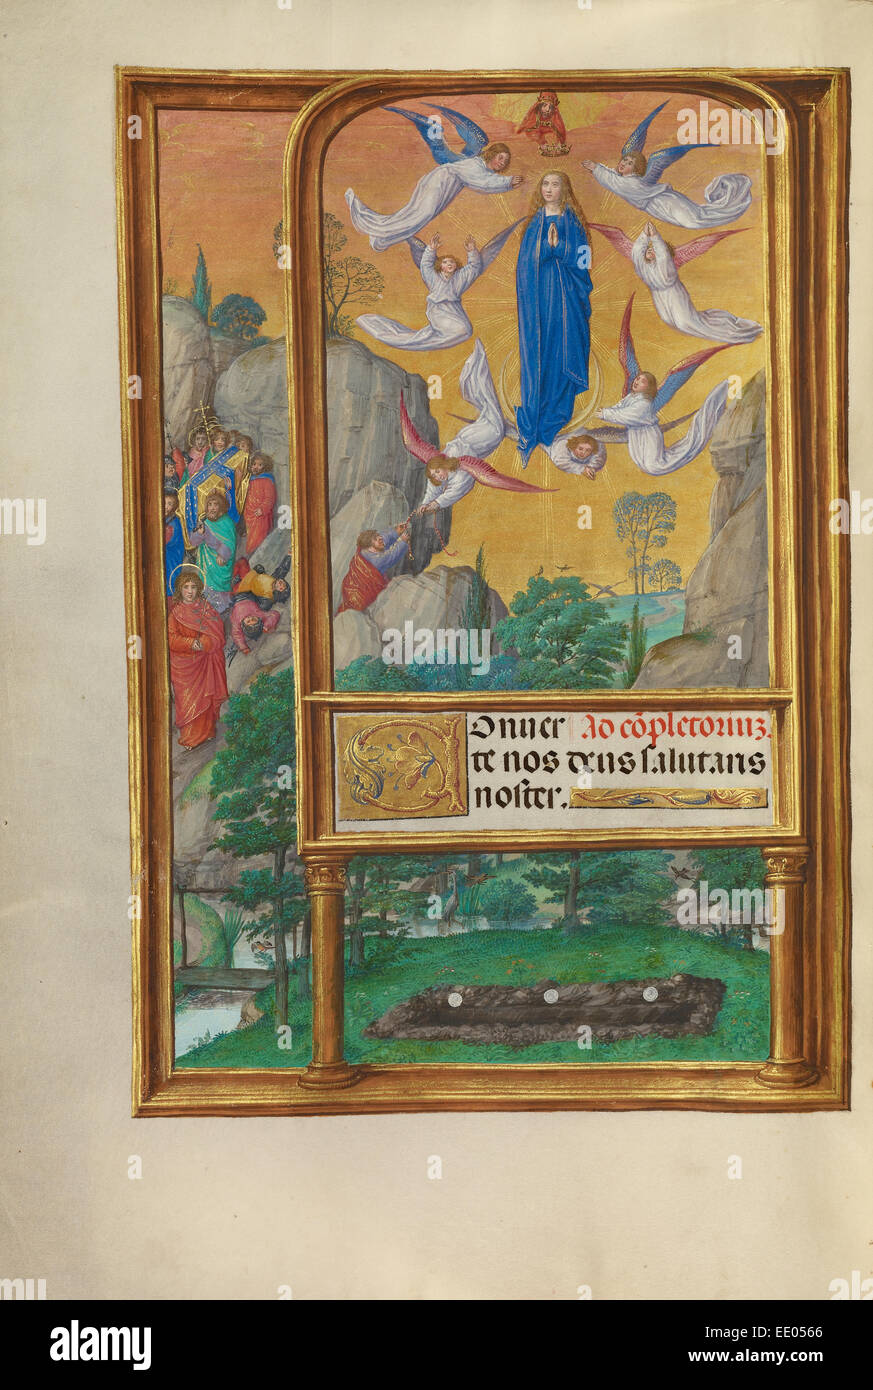 The Assumption of the Virgin; Master of James IV of Scotland, Flemish, before 1465 - about 1541; Bruges, Belgium, - Stock Image